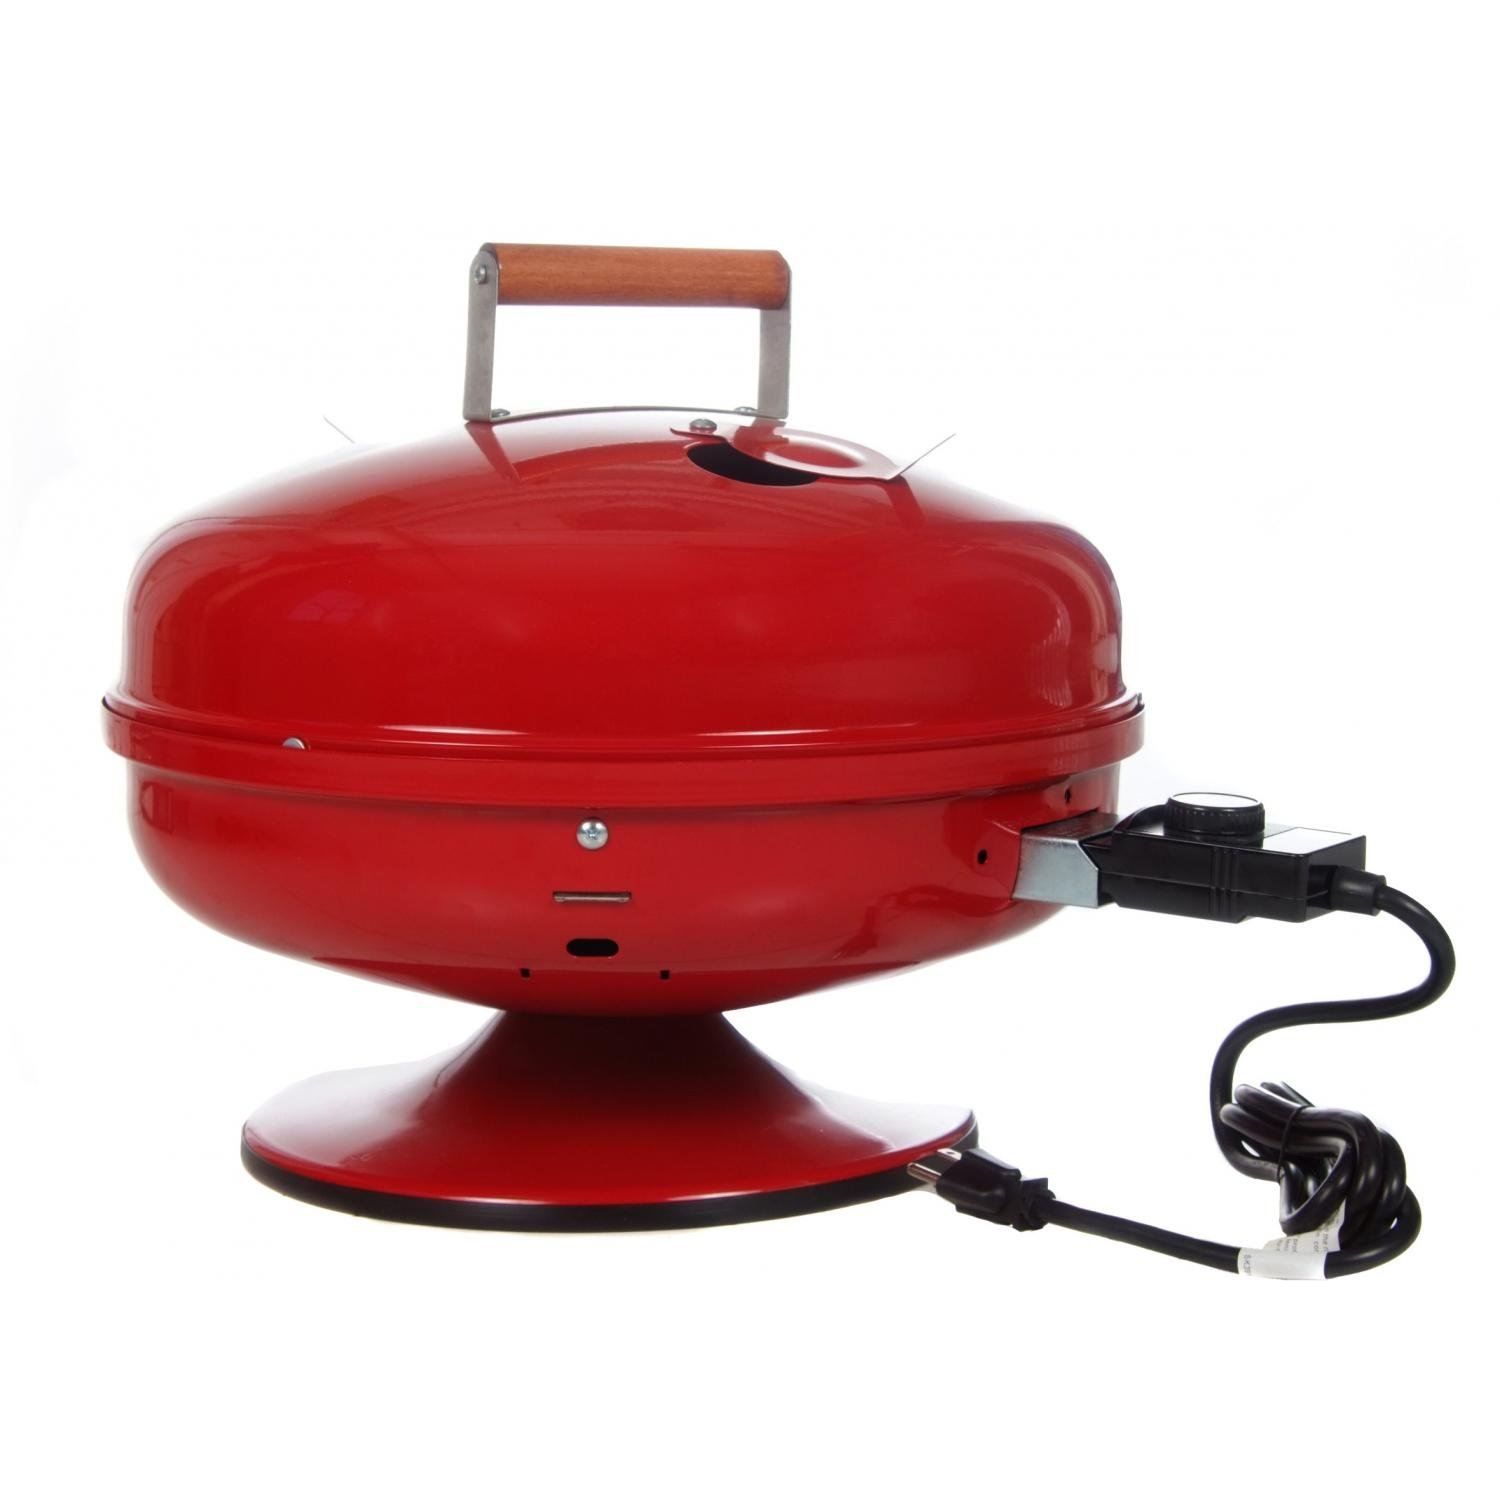 Meco Electric Grills - 2120 Lock-n-go Portable Electric Bbq Grill - Red by Meco